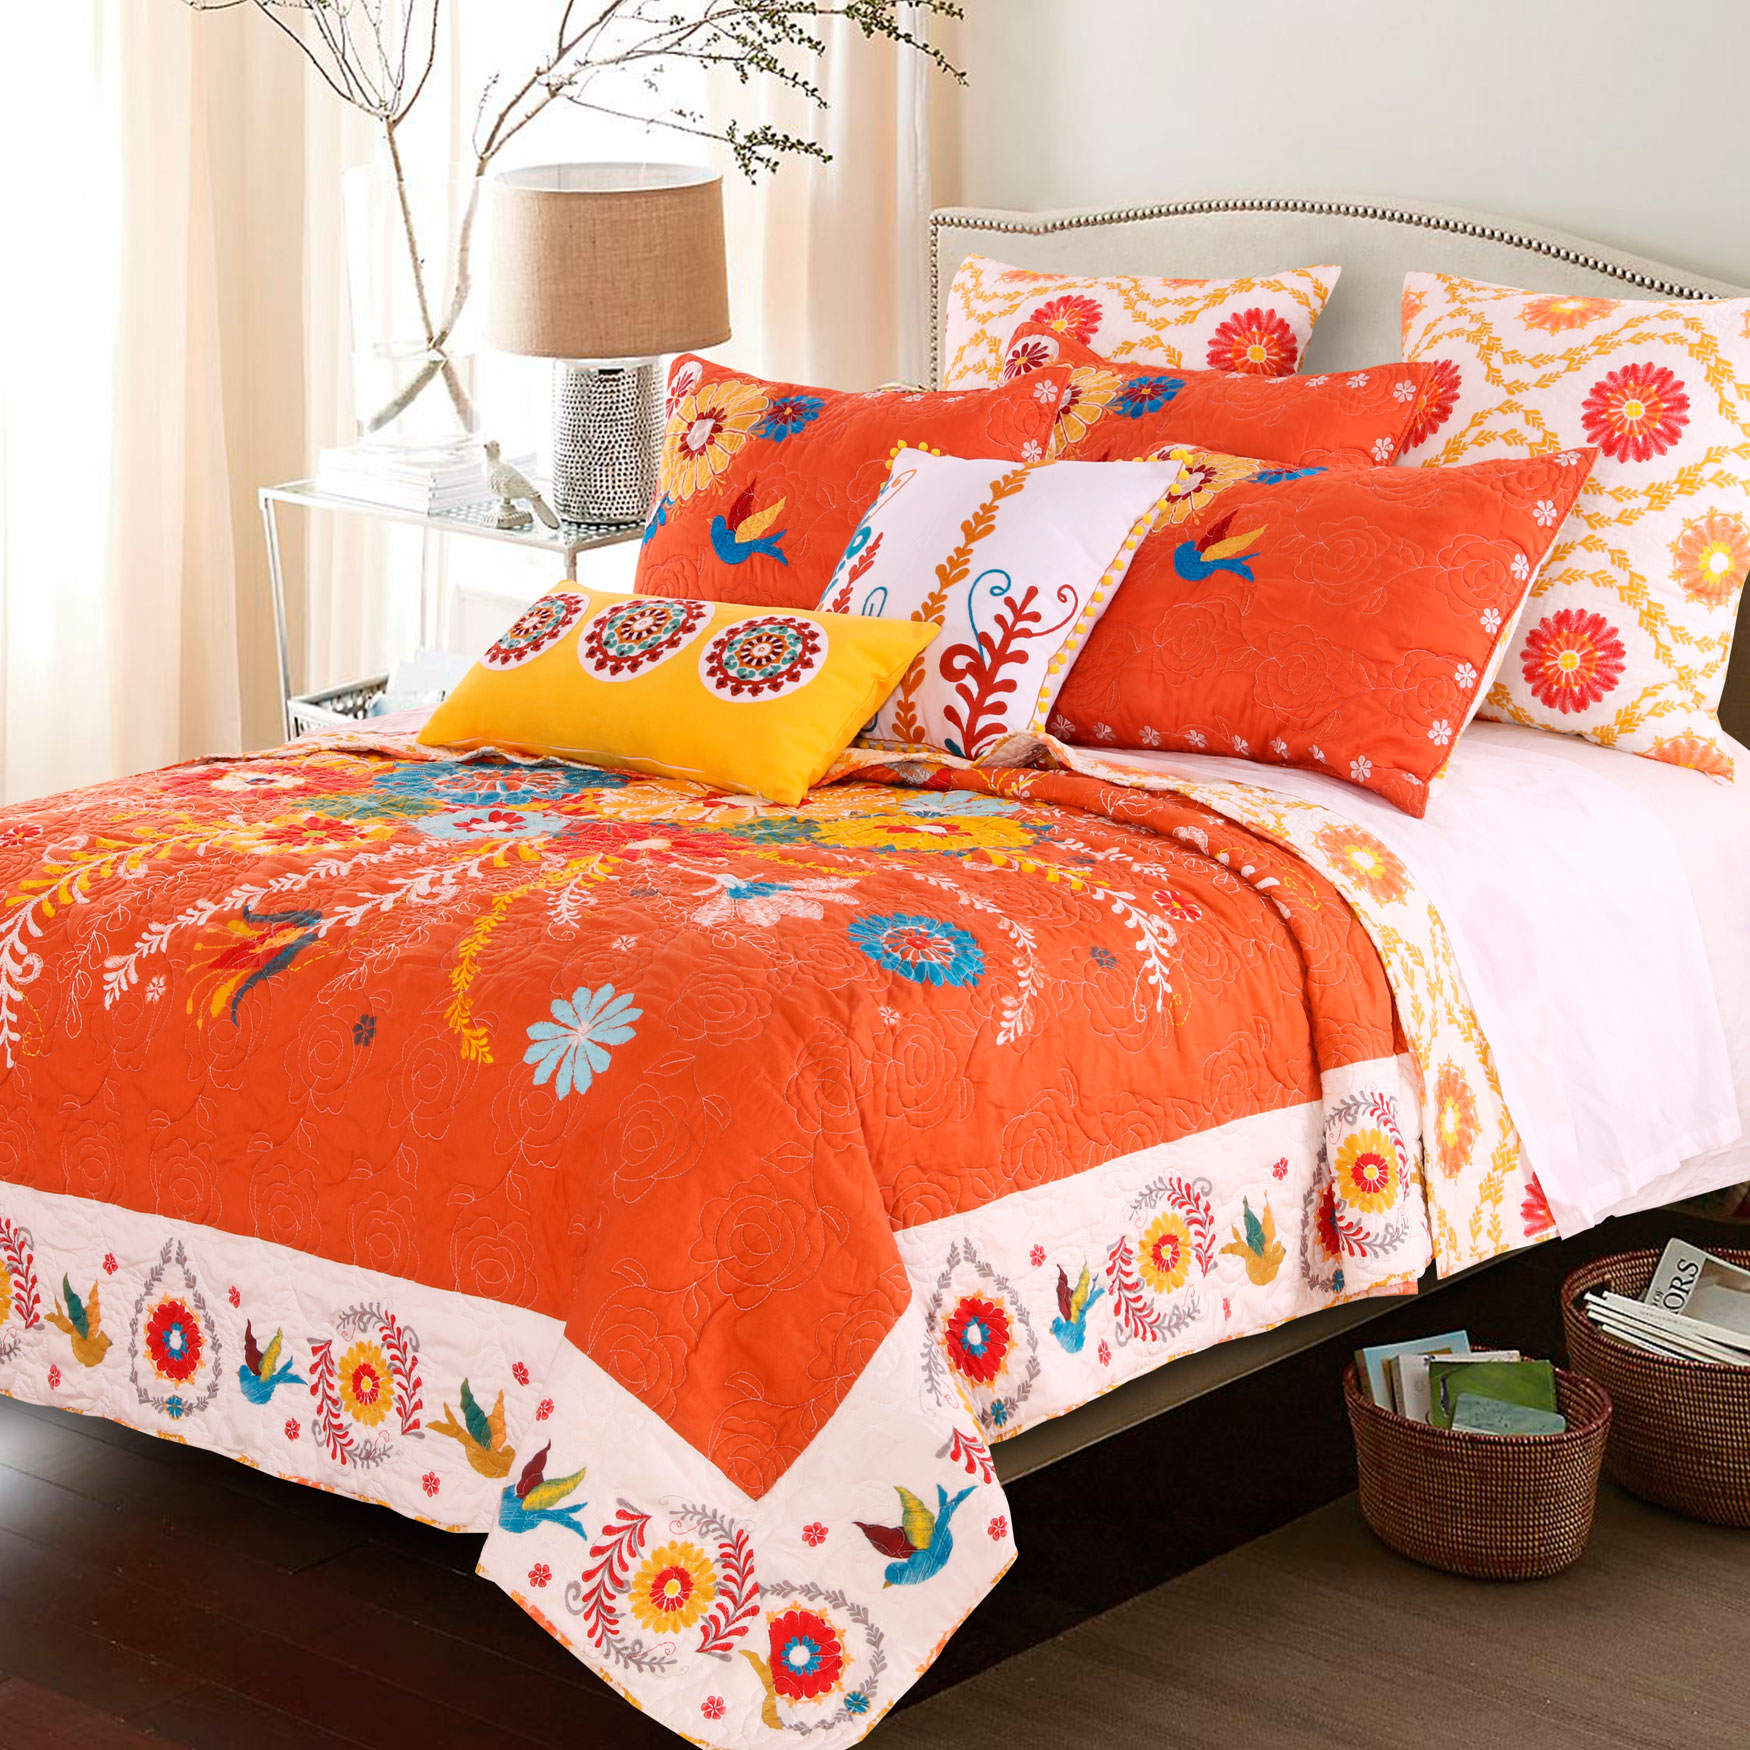 Topanga Quilt Set by Barefoot Bungalow,